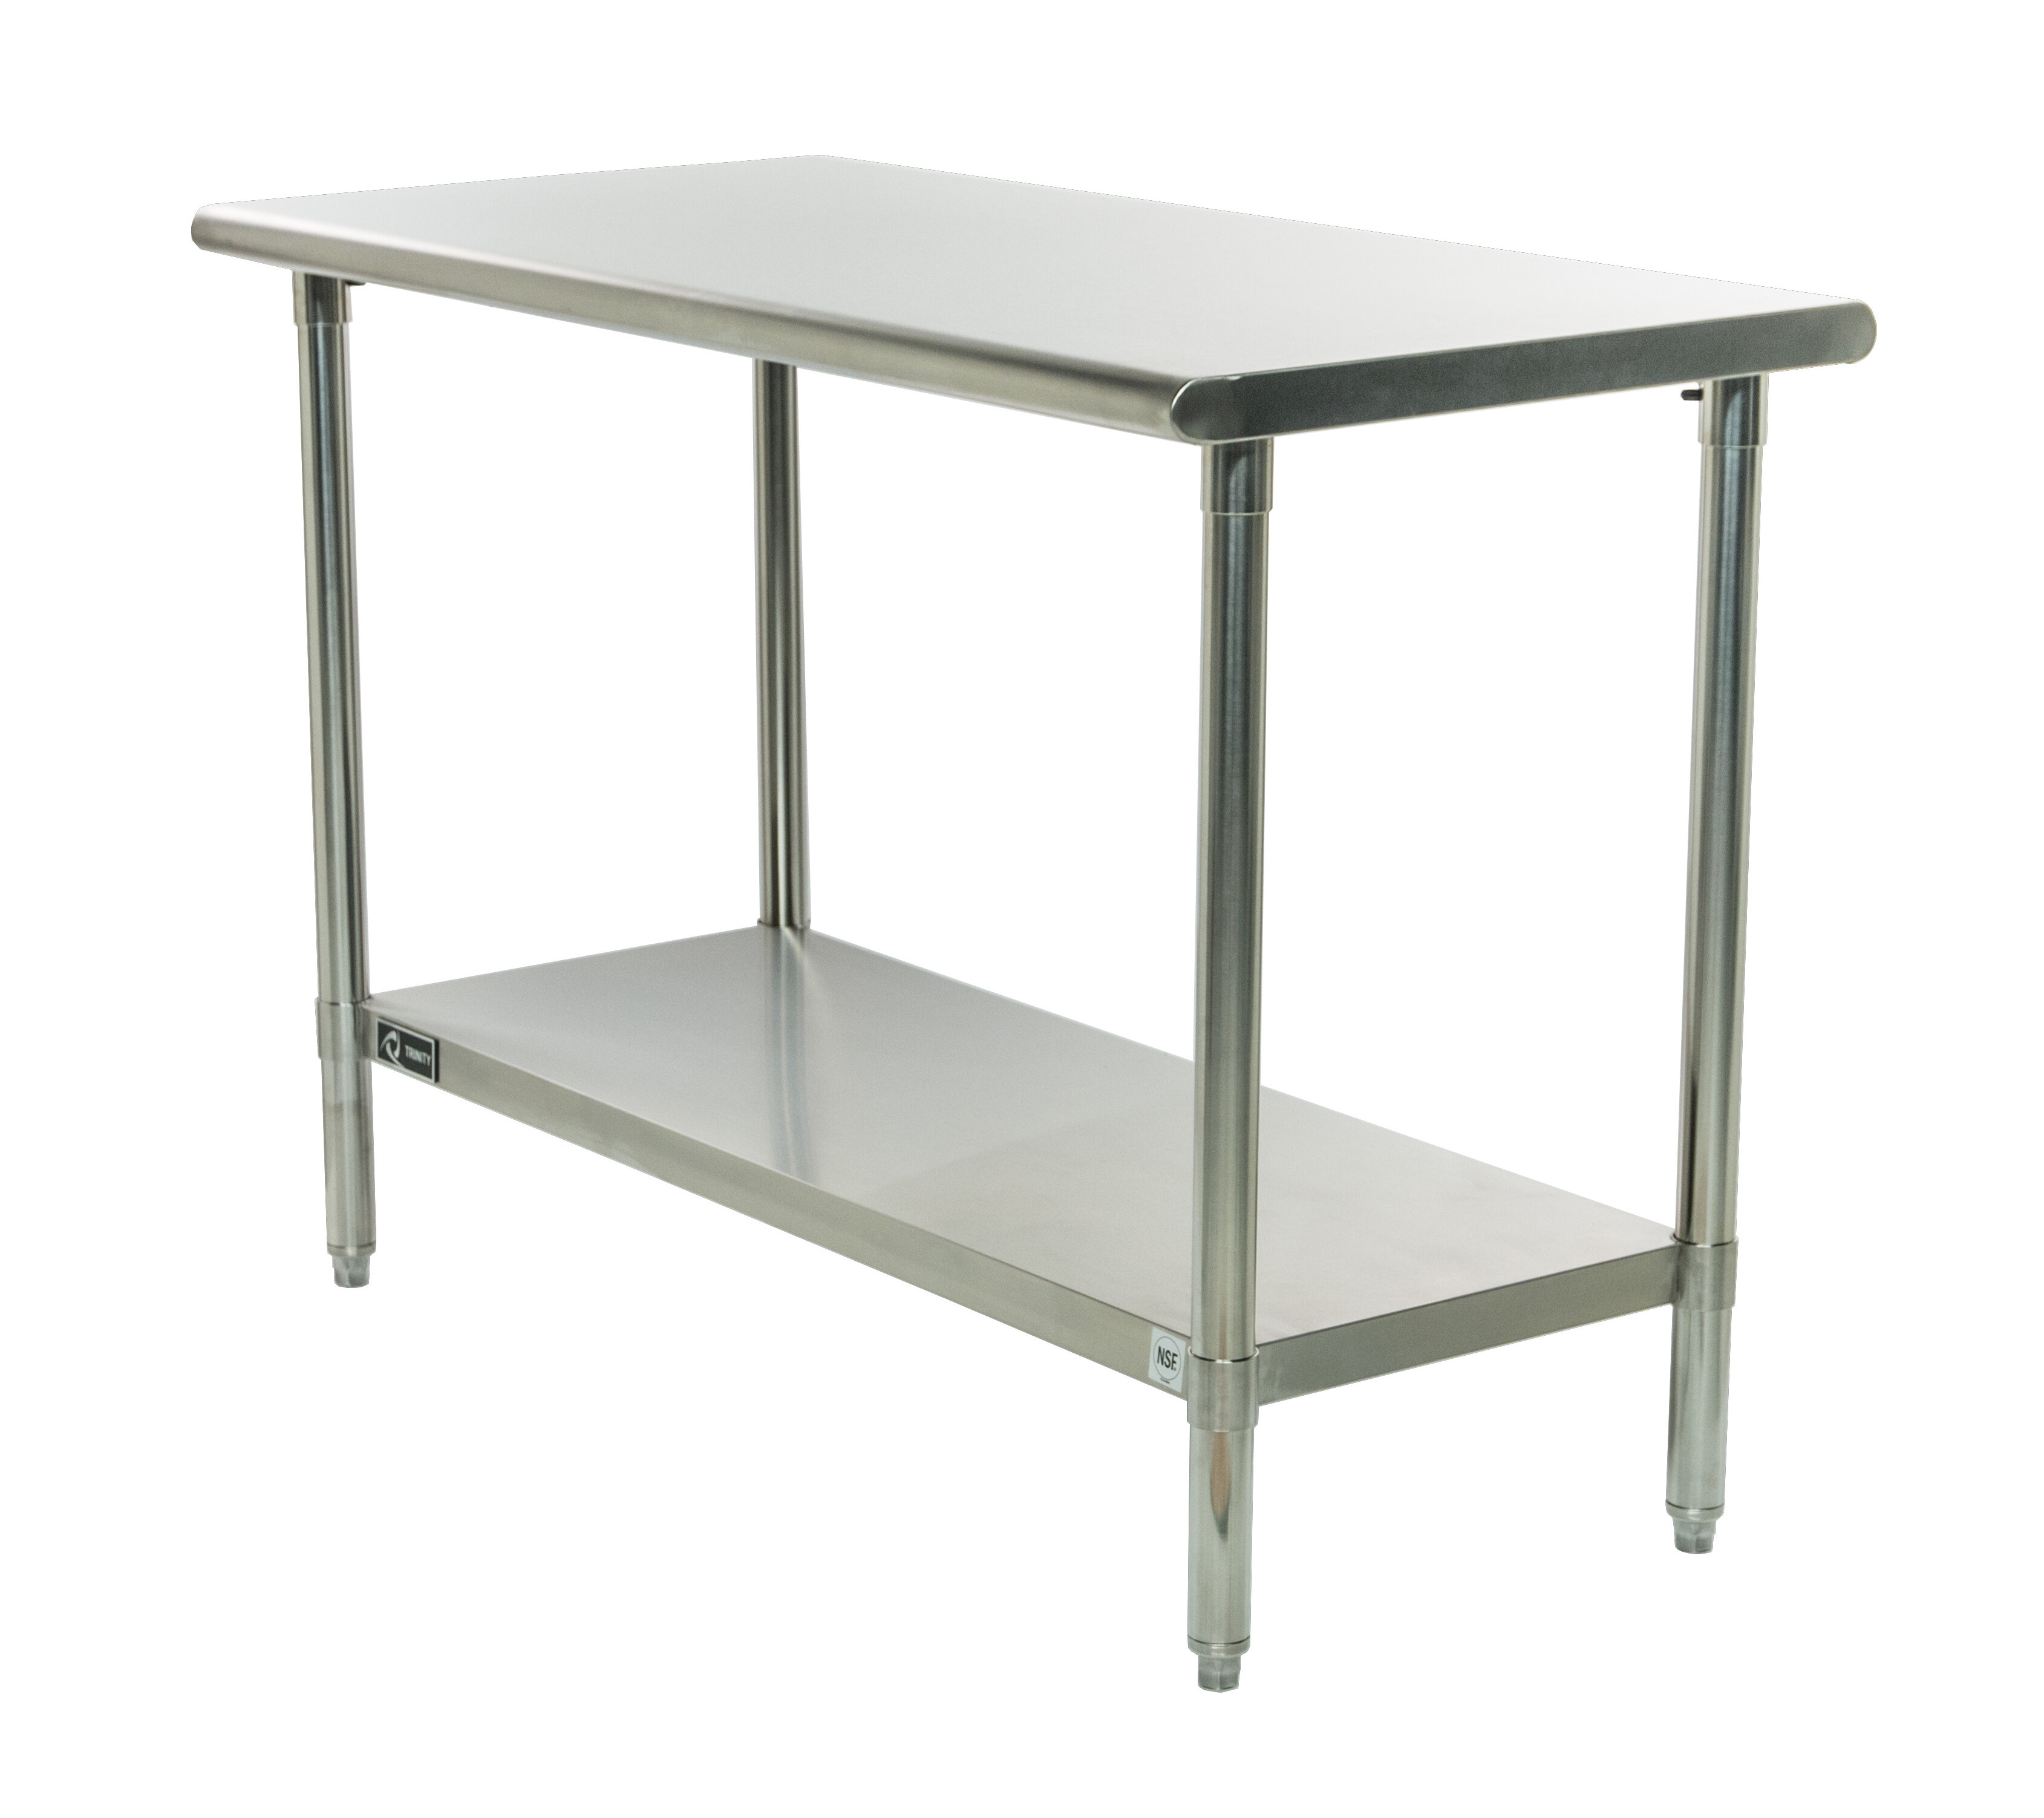 Rebrilliant 48W Adjustable Height Stainless Steel Top Workbench & Reviews